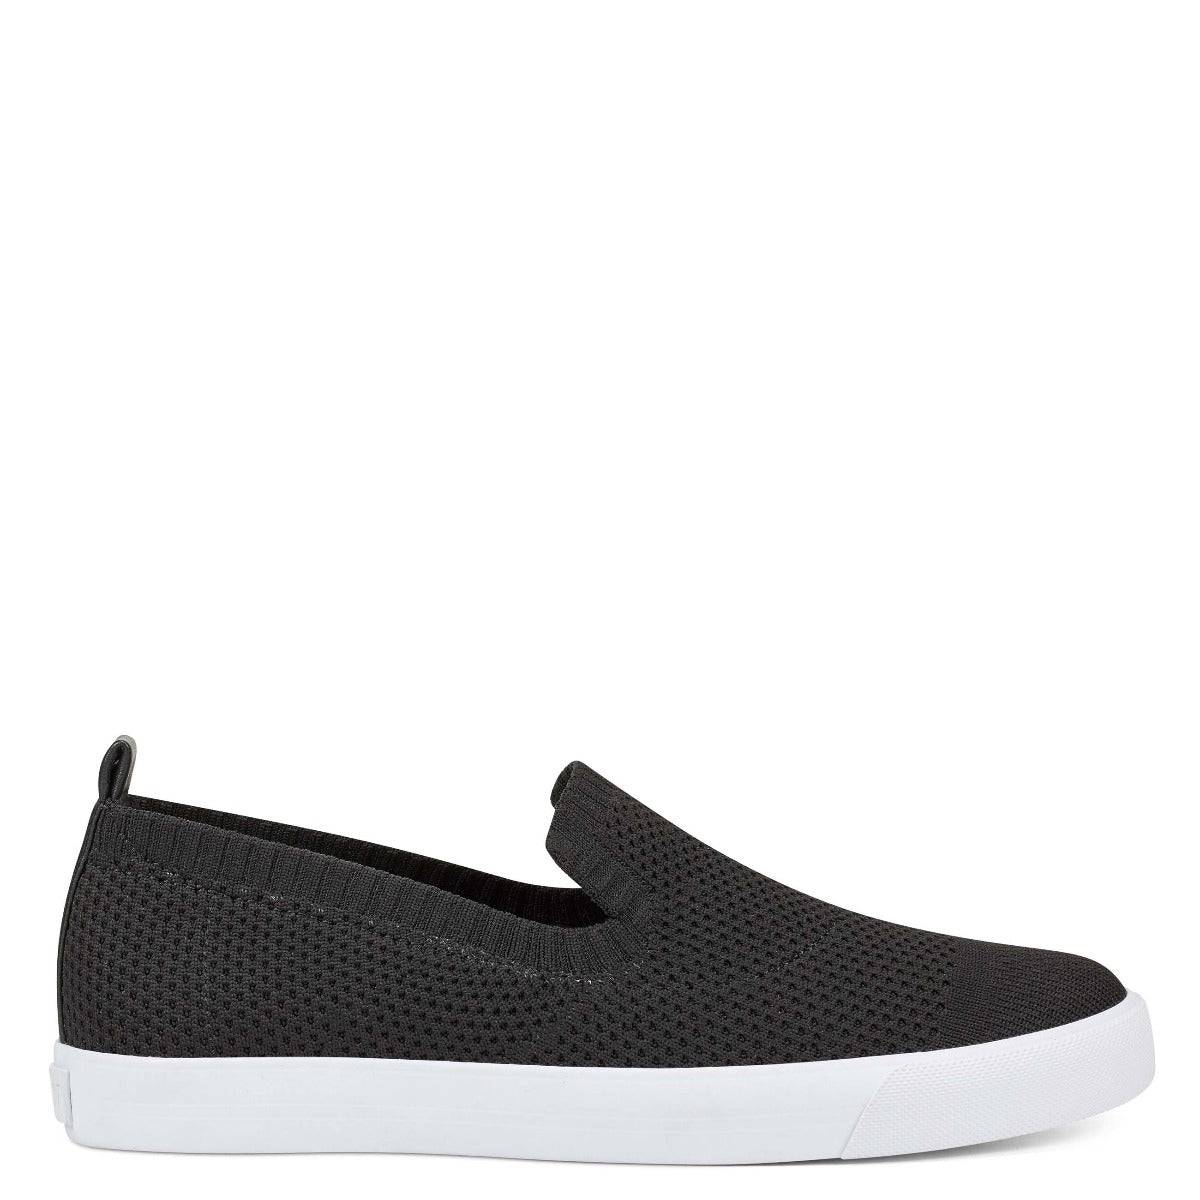 Baeya Slip On Sneakers